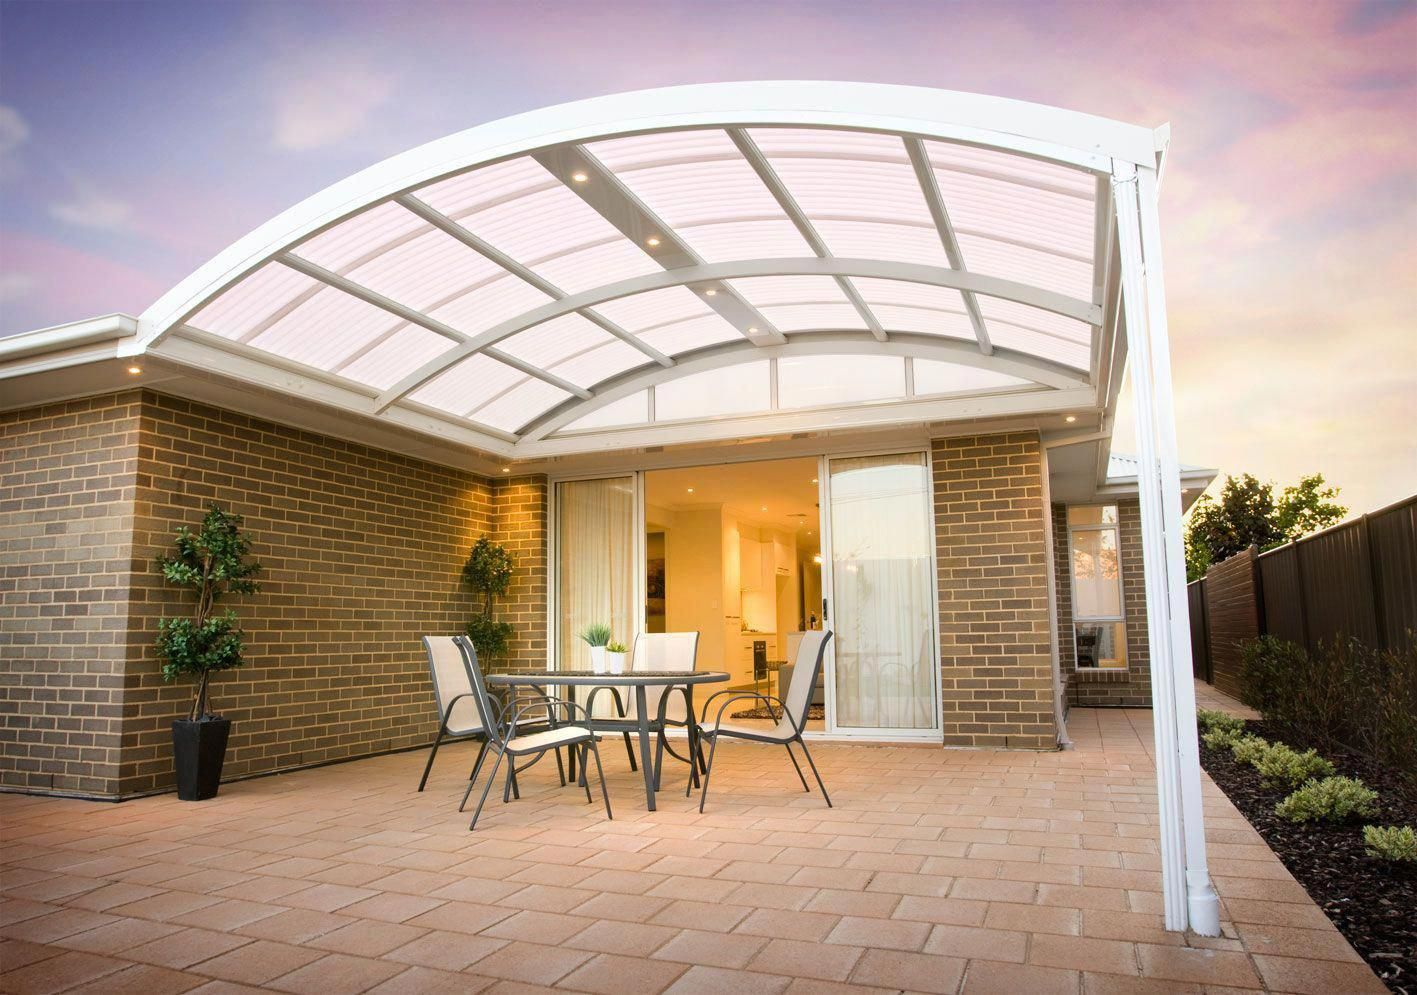 Contact Kapoor Plastics In New Delhi India To Buy Cost Efficient And Quality Certified Polycarbonate Panels For Roofing Nor Curved Patio Patio Modern Pergola